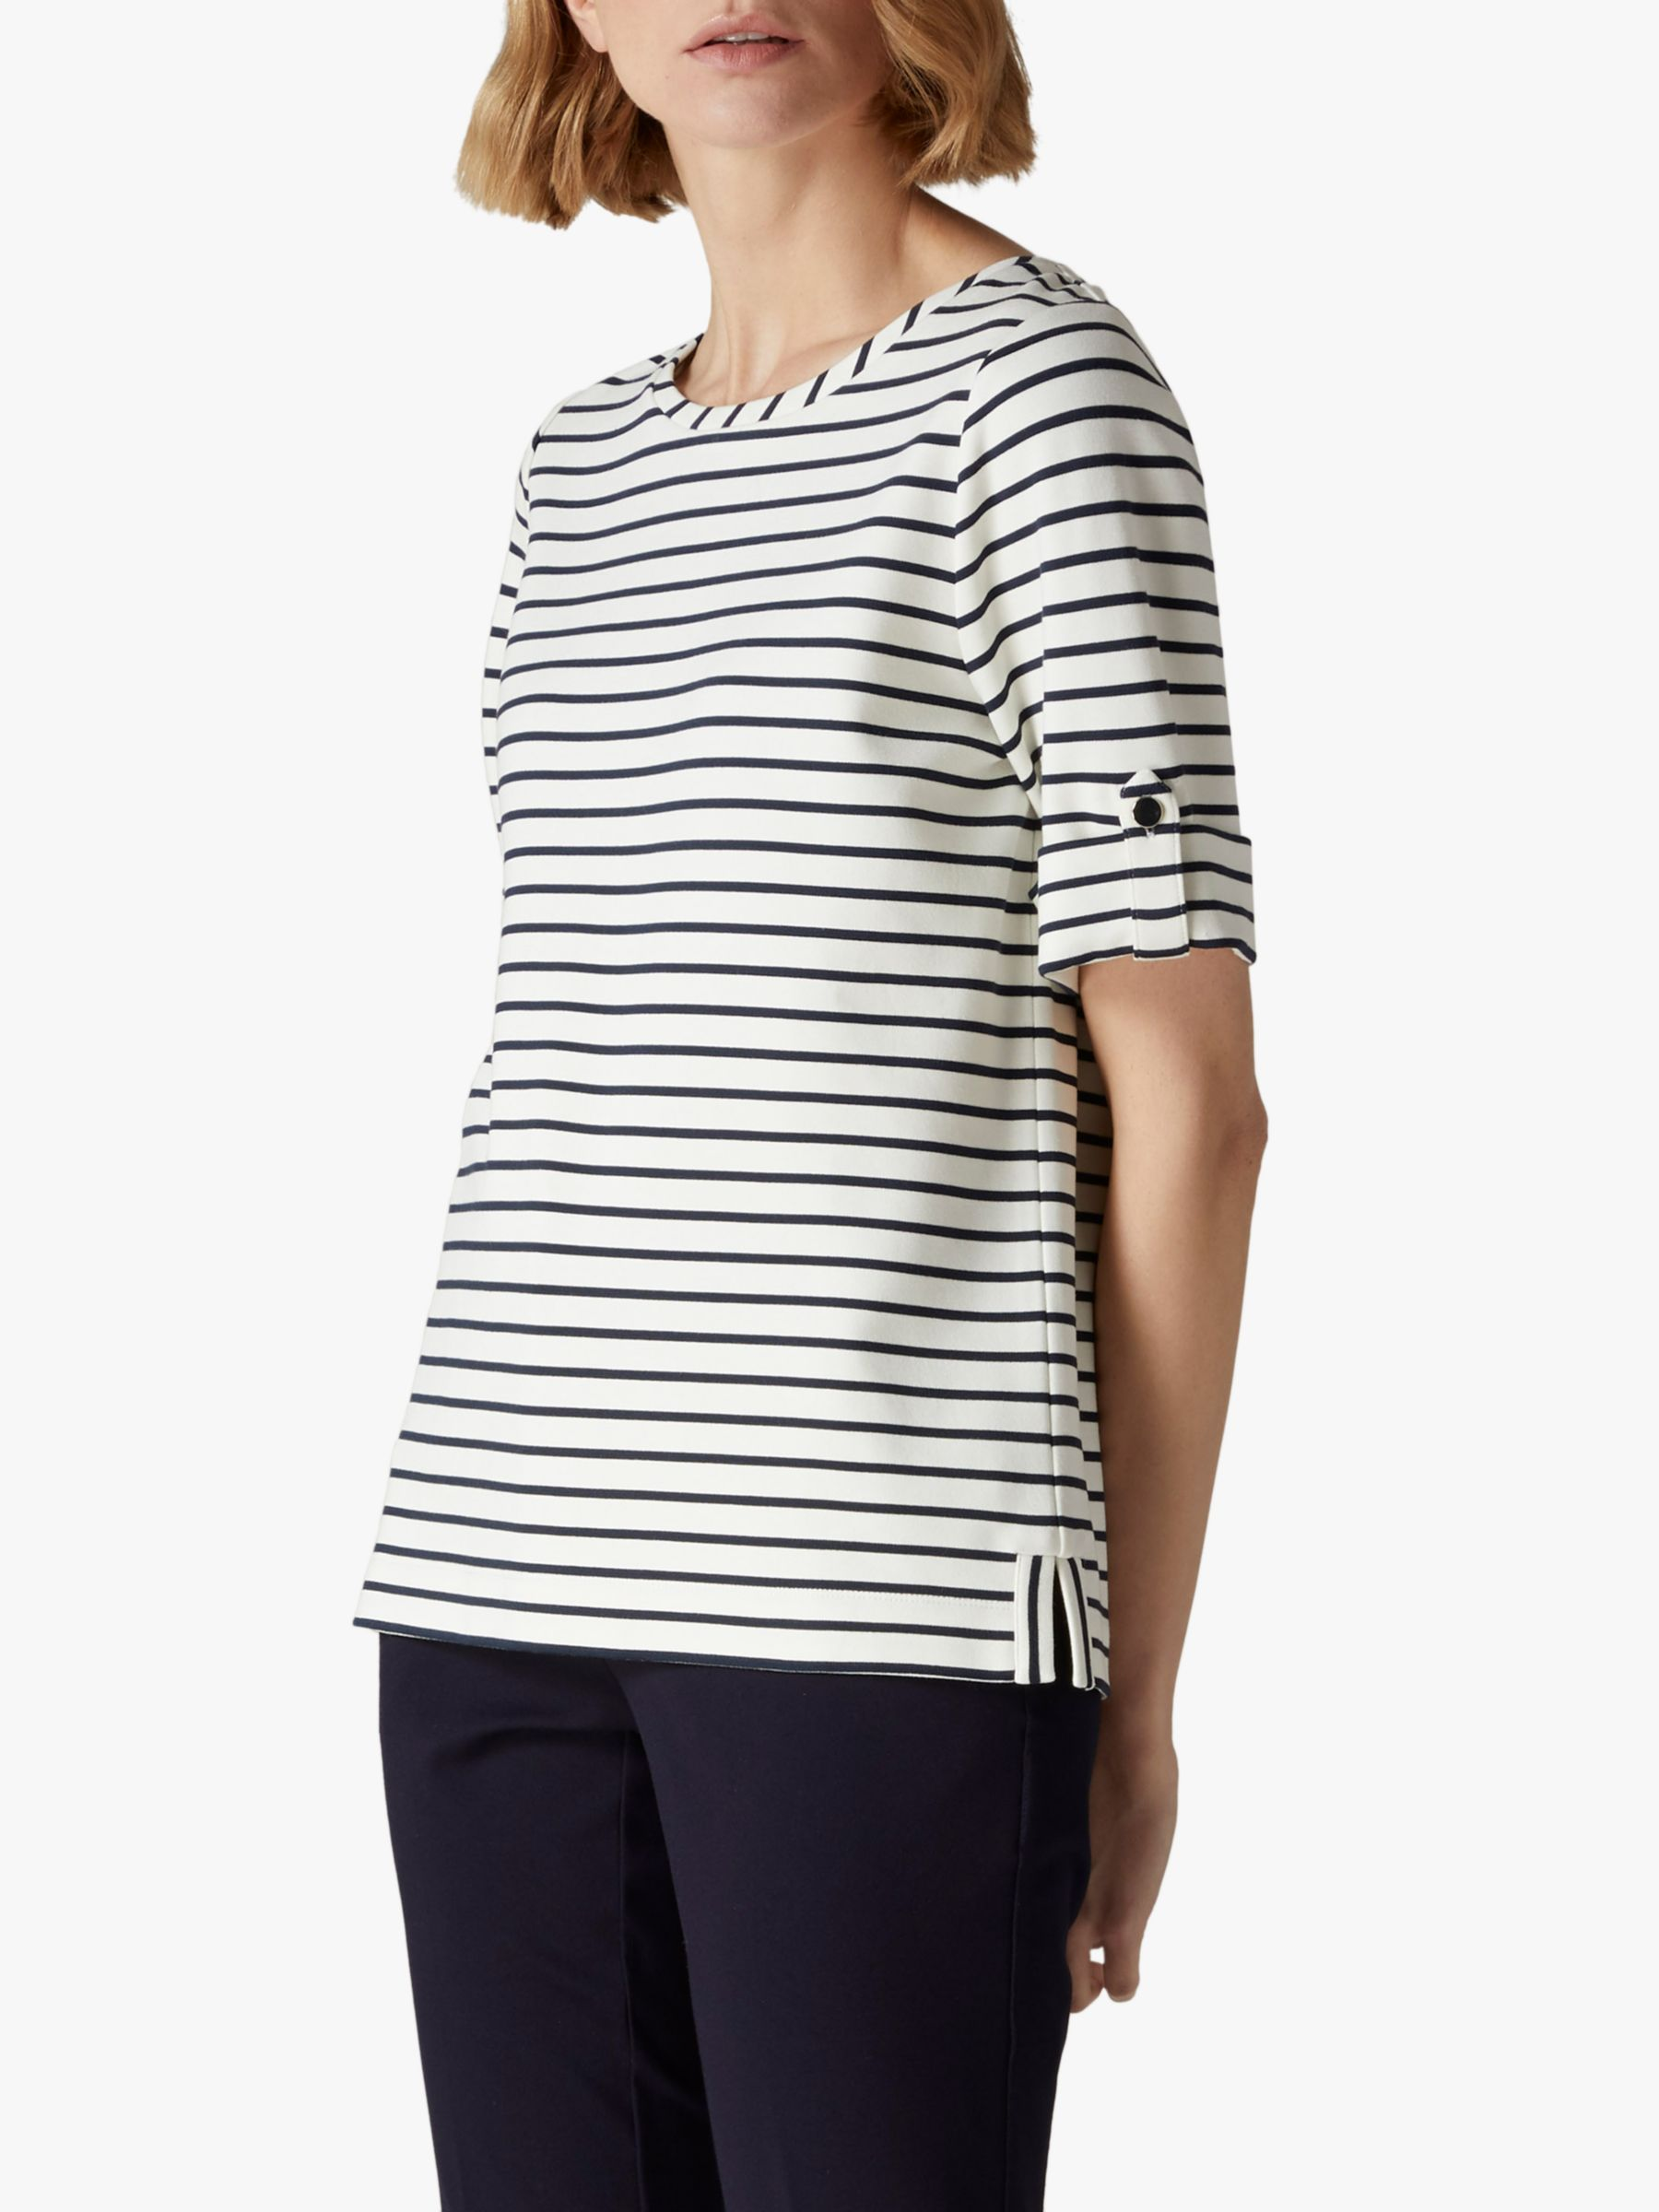 Jaeger Jaeger Breton Button Cuff Top, Navy